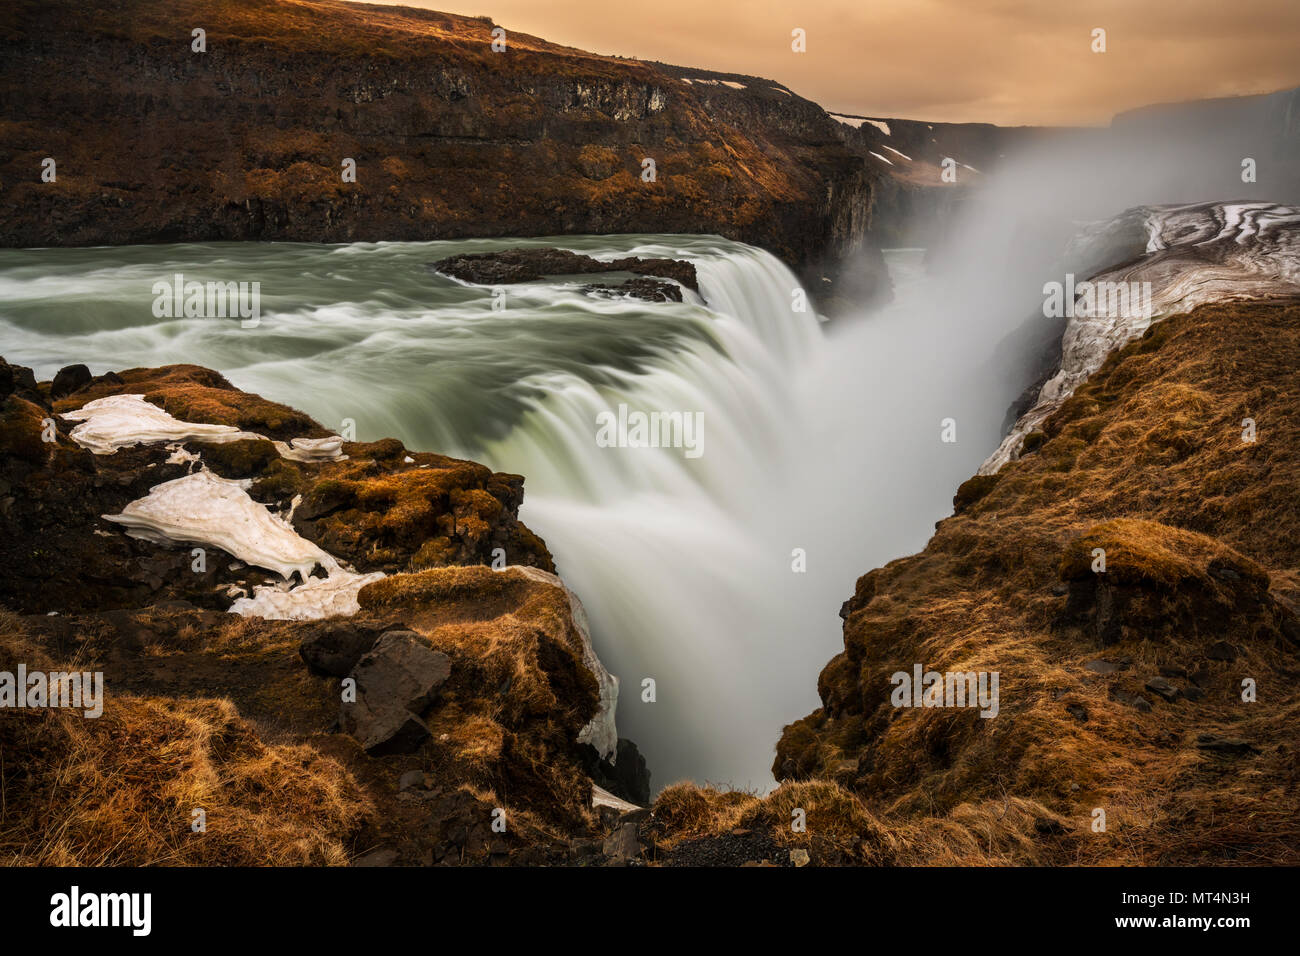 Mighty Gullfoss falling into the canyon of Hvítá river. - Stock Image